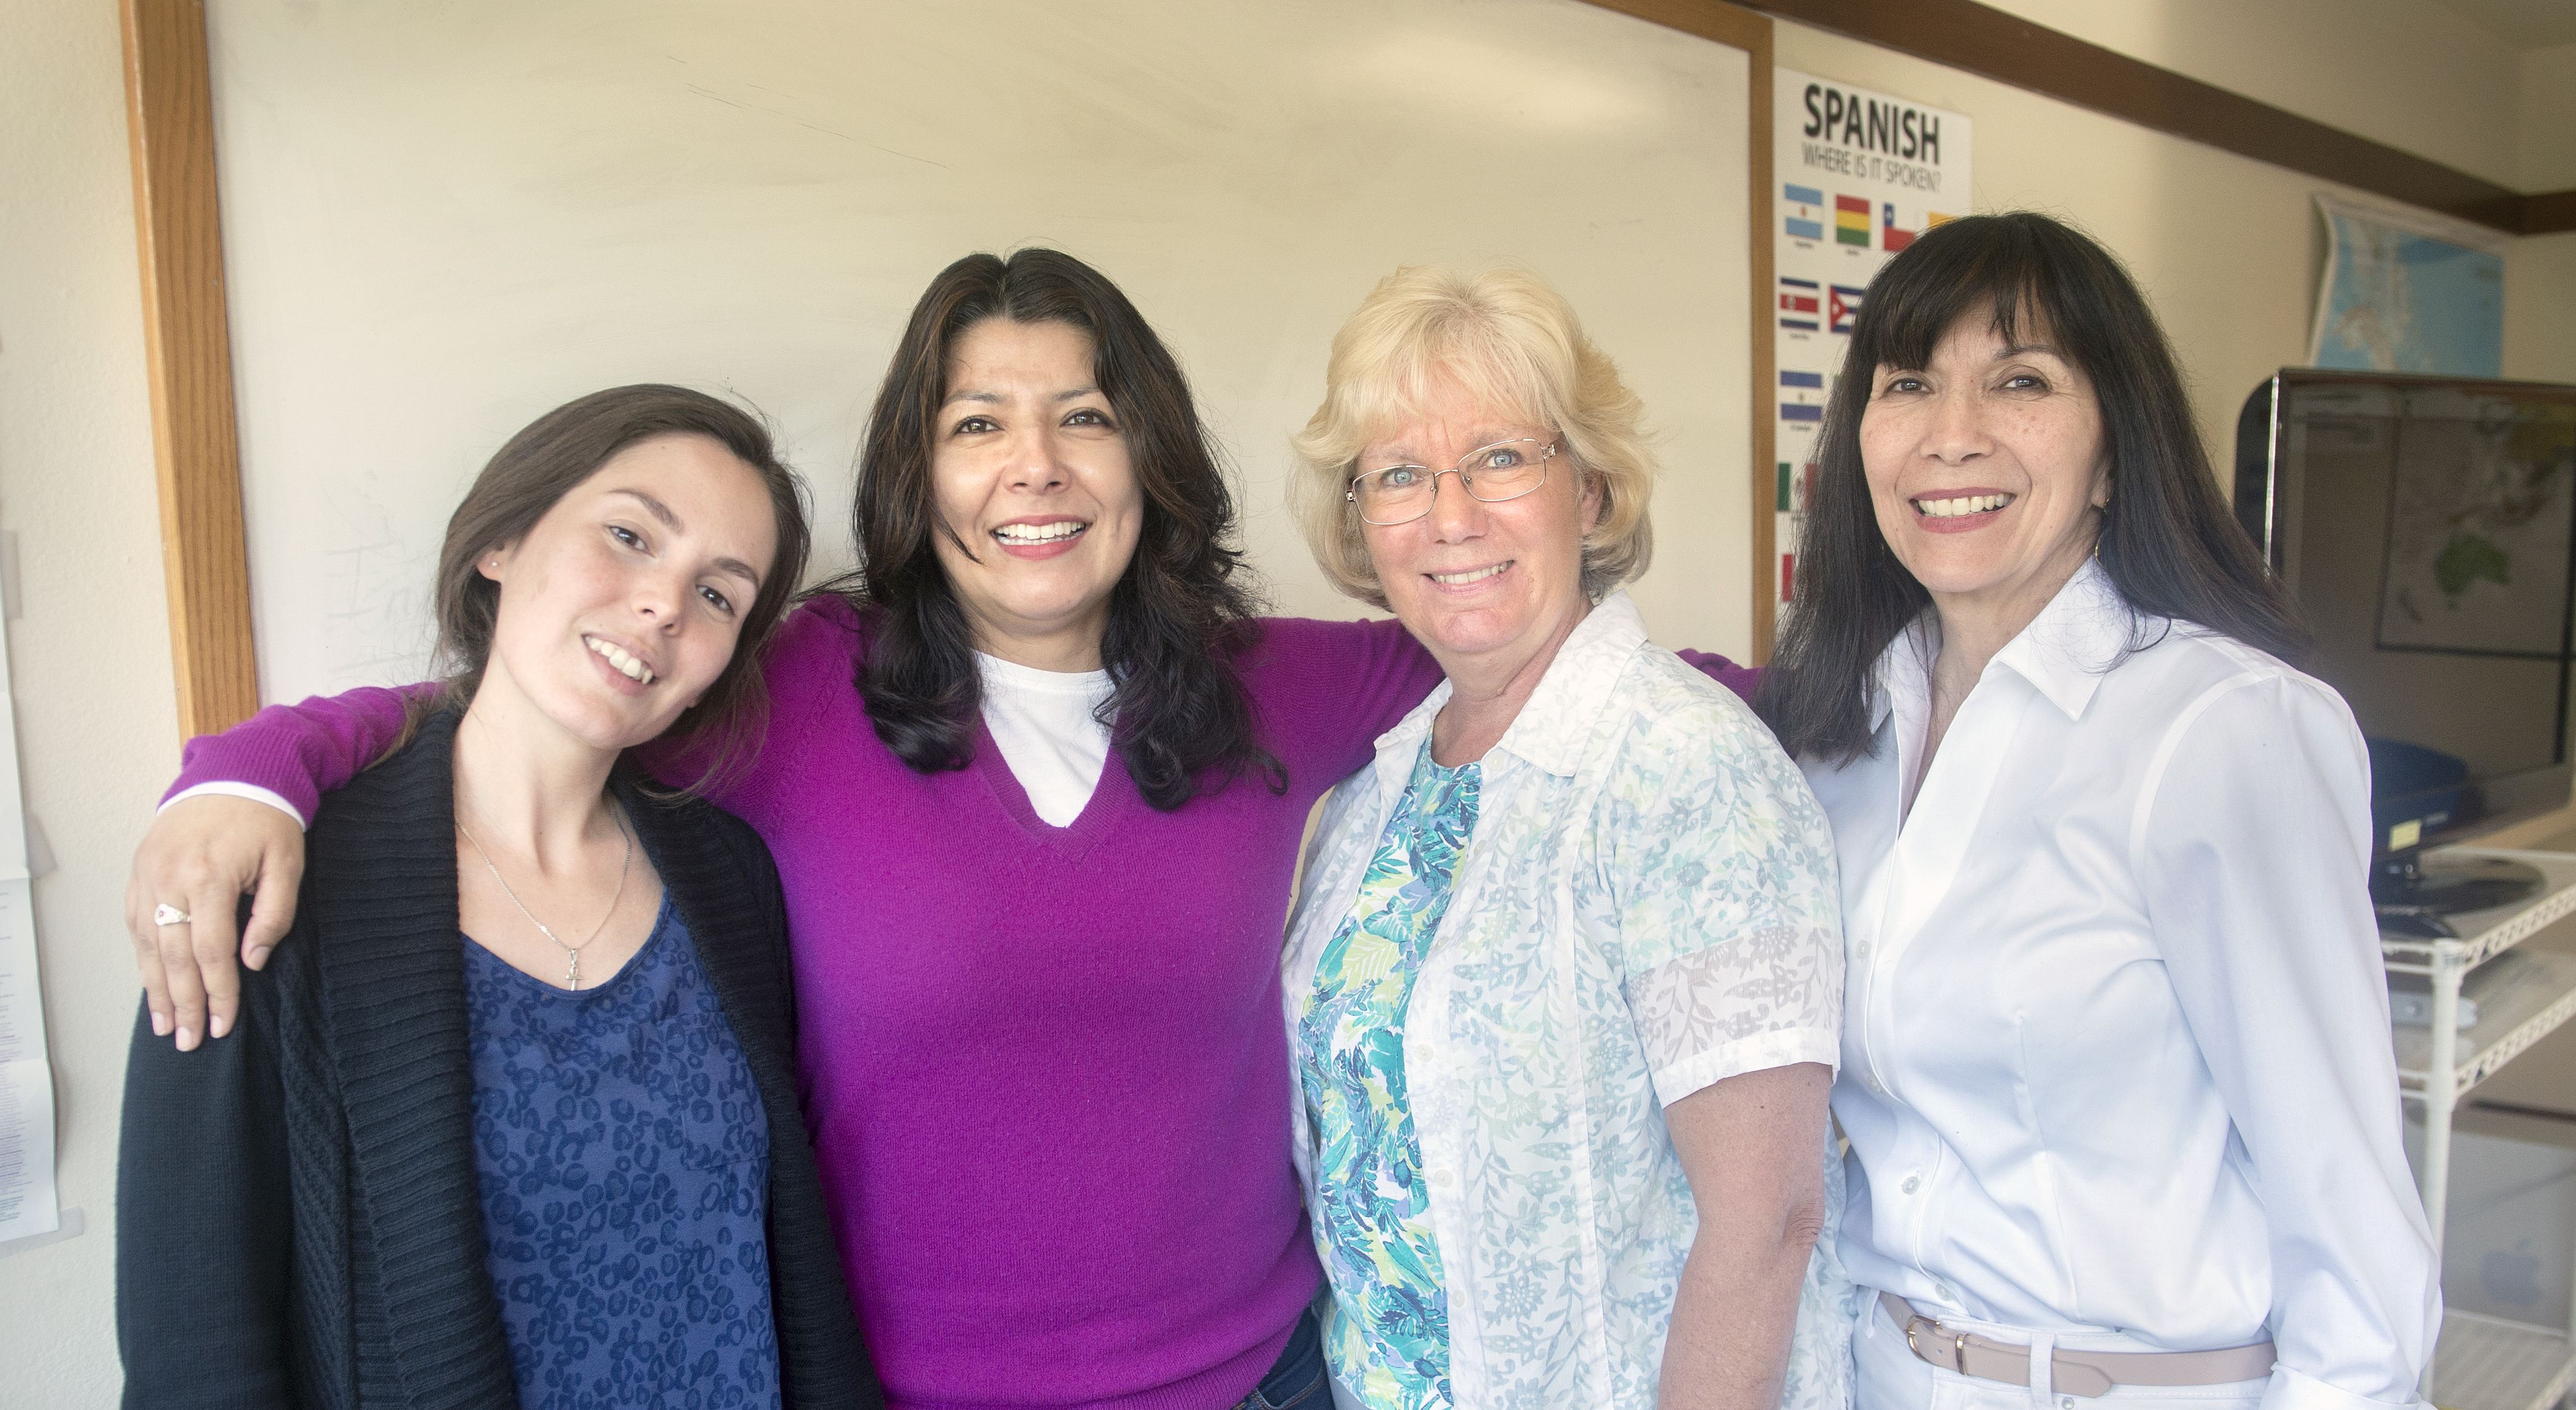 Learn Spanish in Marin County with our multicultural staff